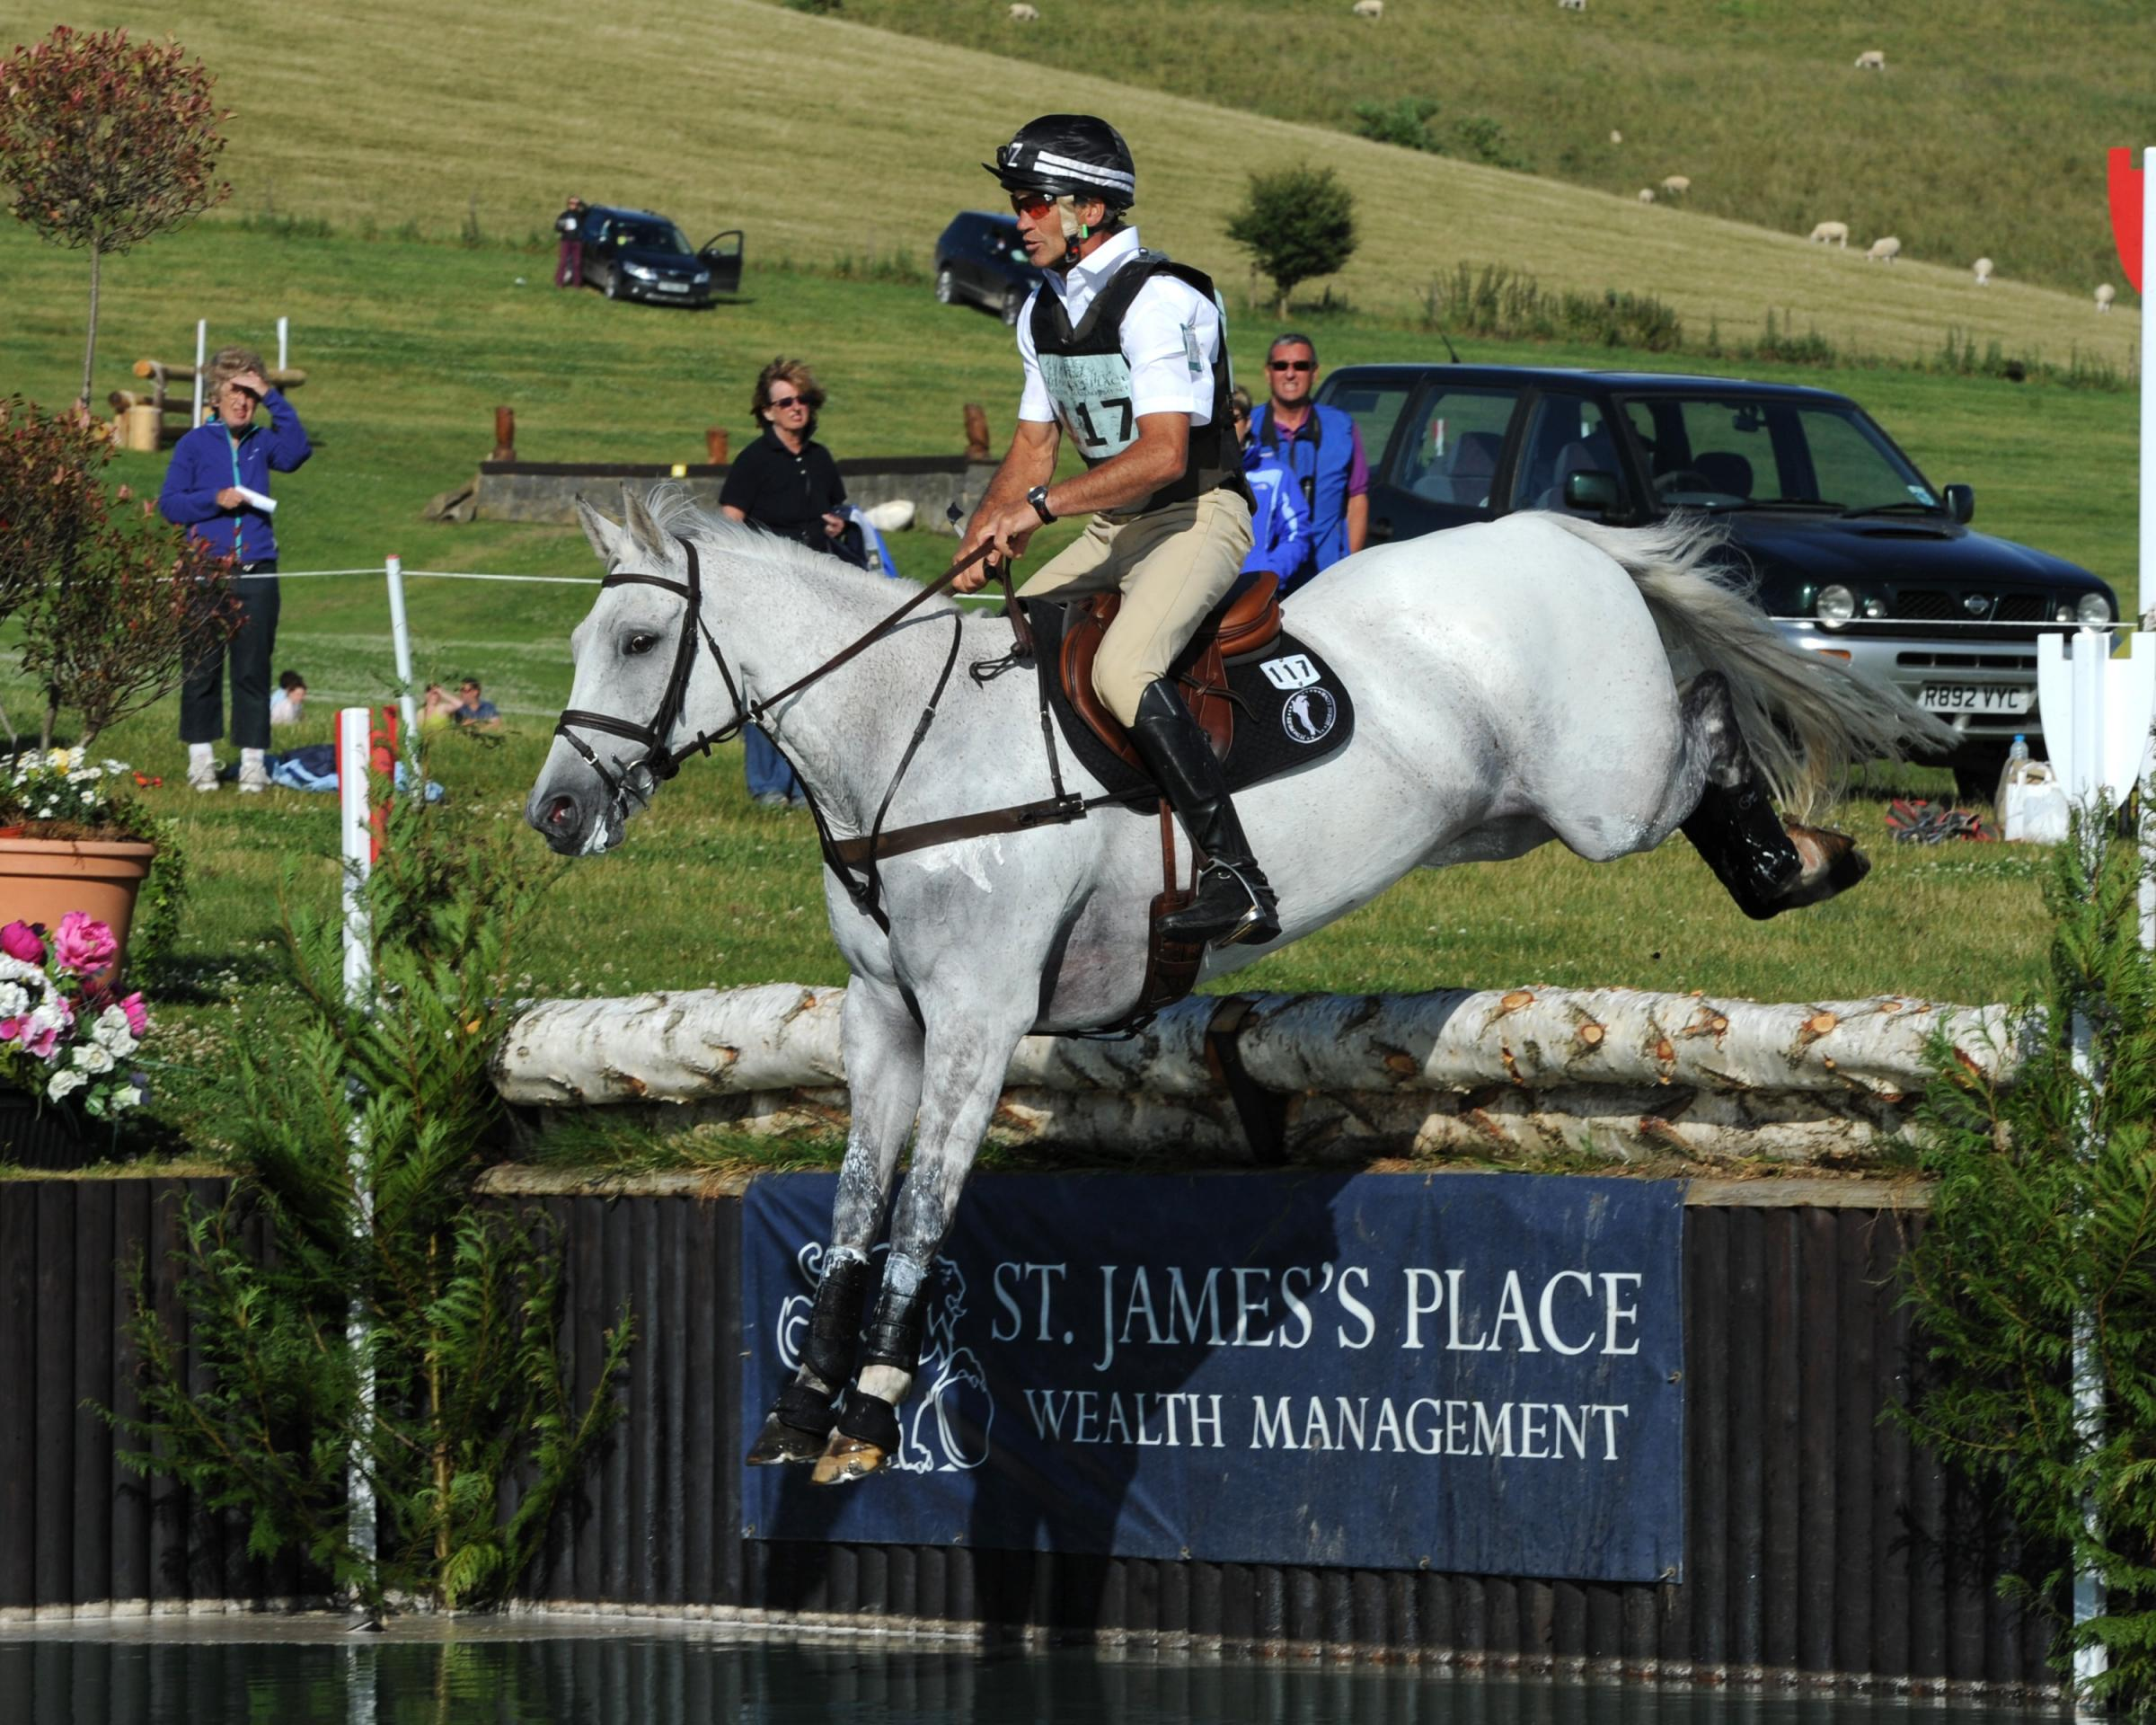 EQUESTRIAN: Andrew Nicholson and Avebury make history with Barbury hat-trick